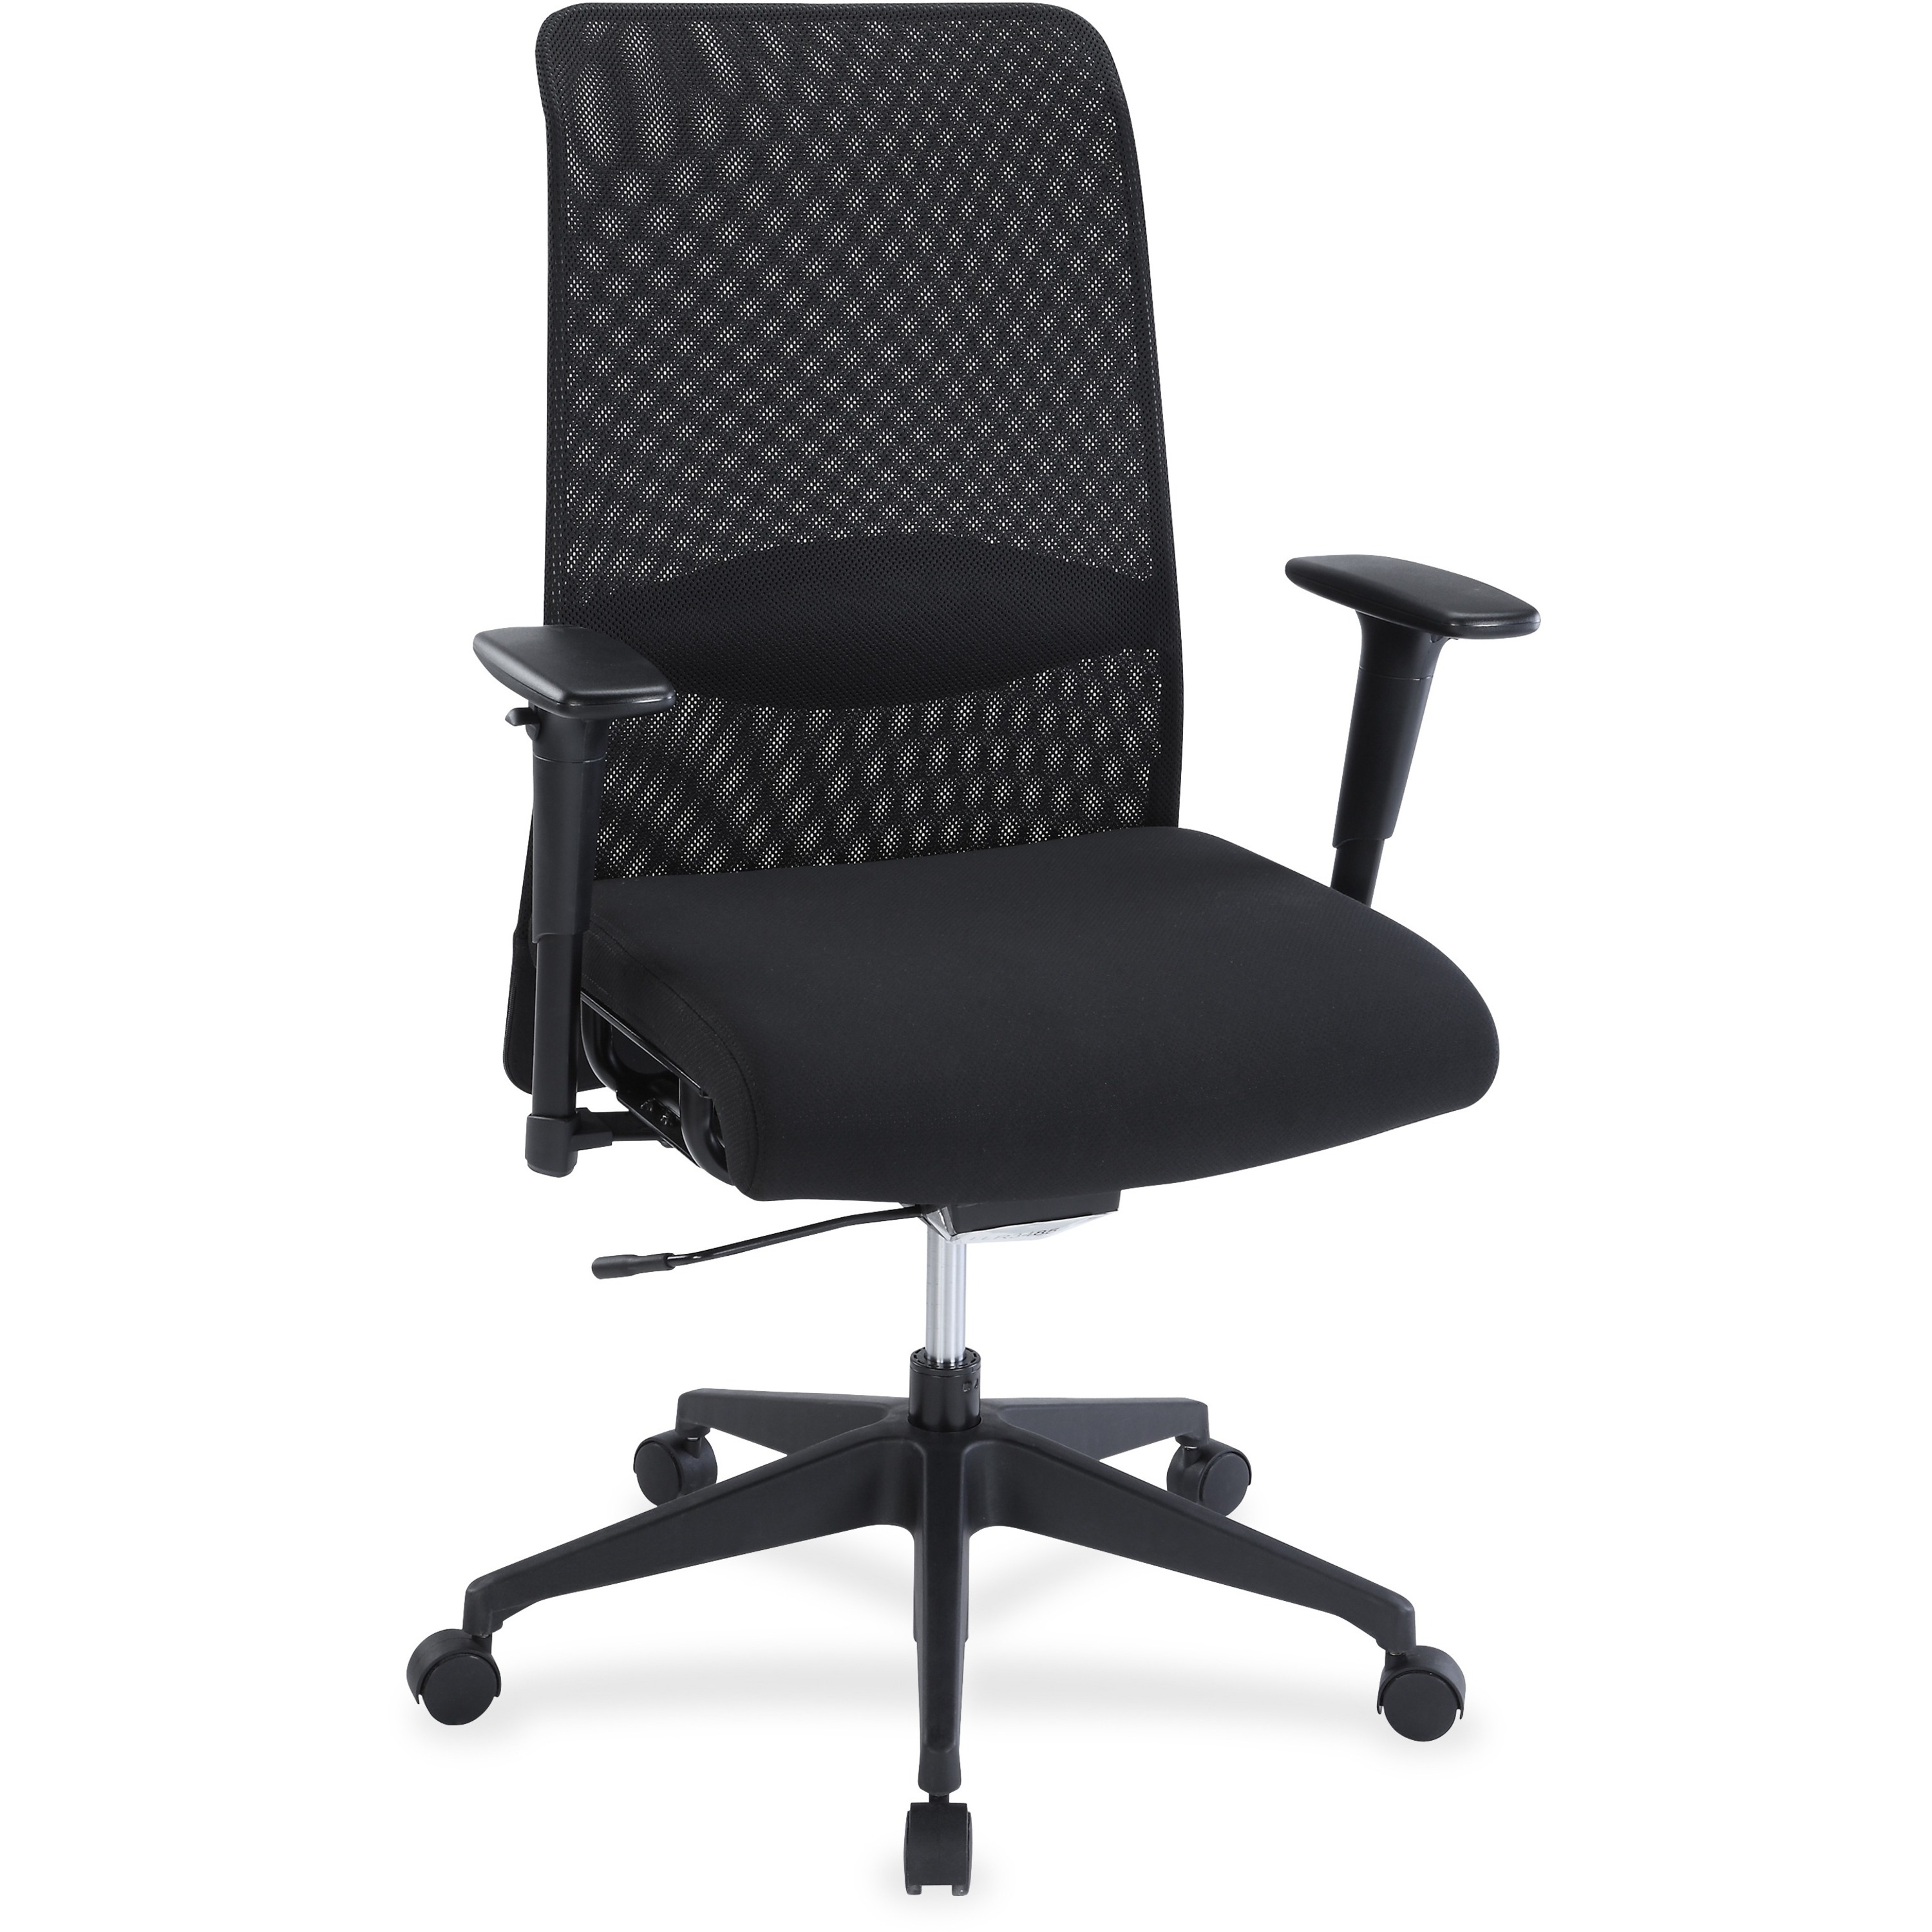 Remarkable Product Llr34854 Lorell Weight Activated Mesh Back Evergreenethics Interior Chair Design Evergreenethicsorg